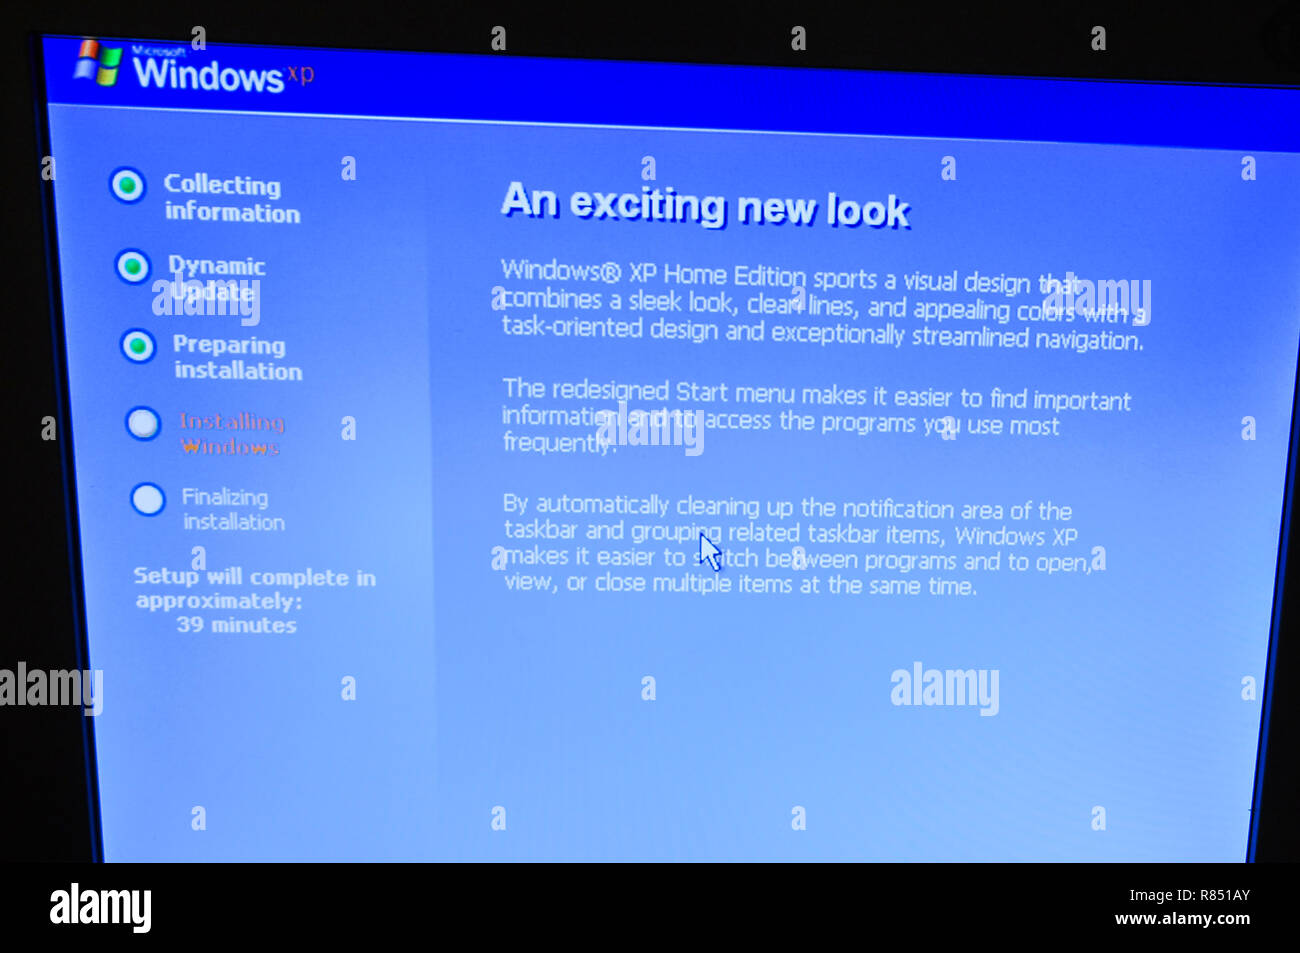 How to upgrade windows xp home to windows xp professional (using.